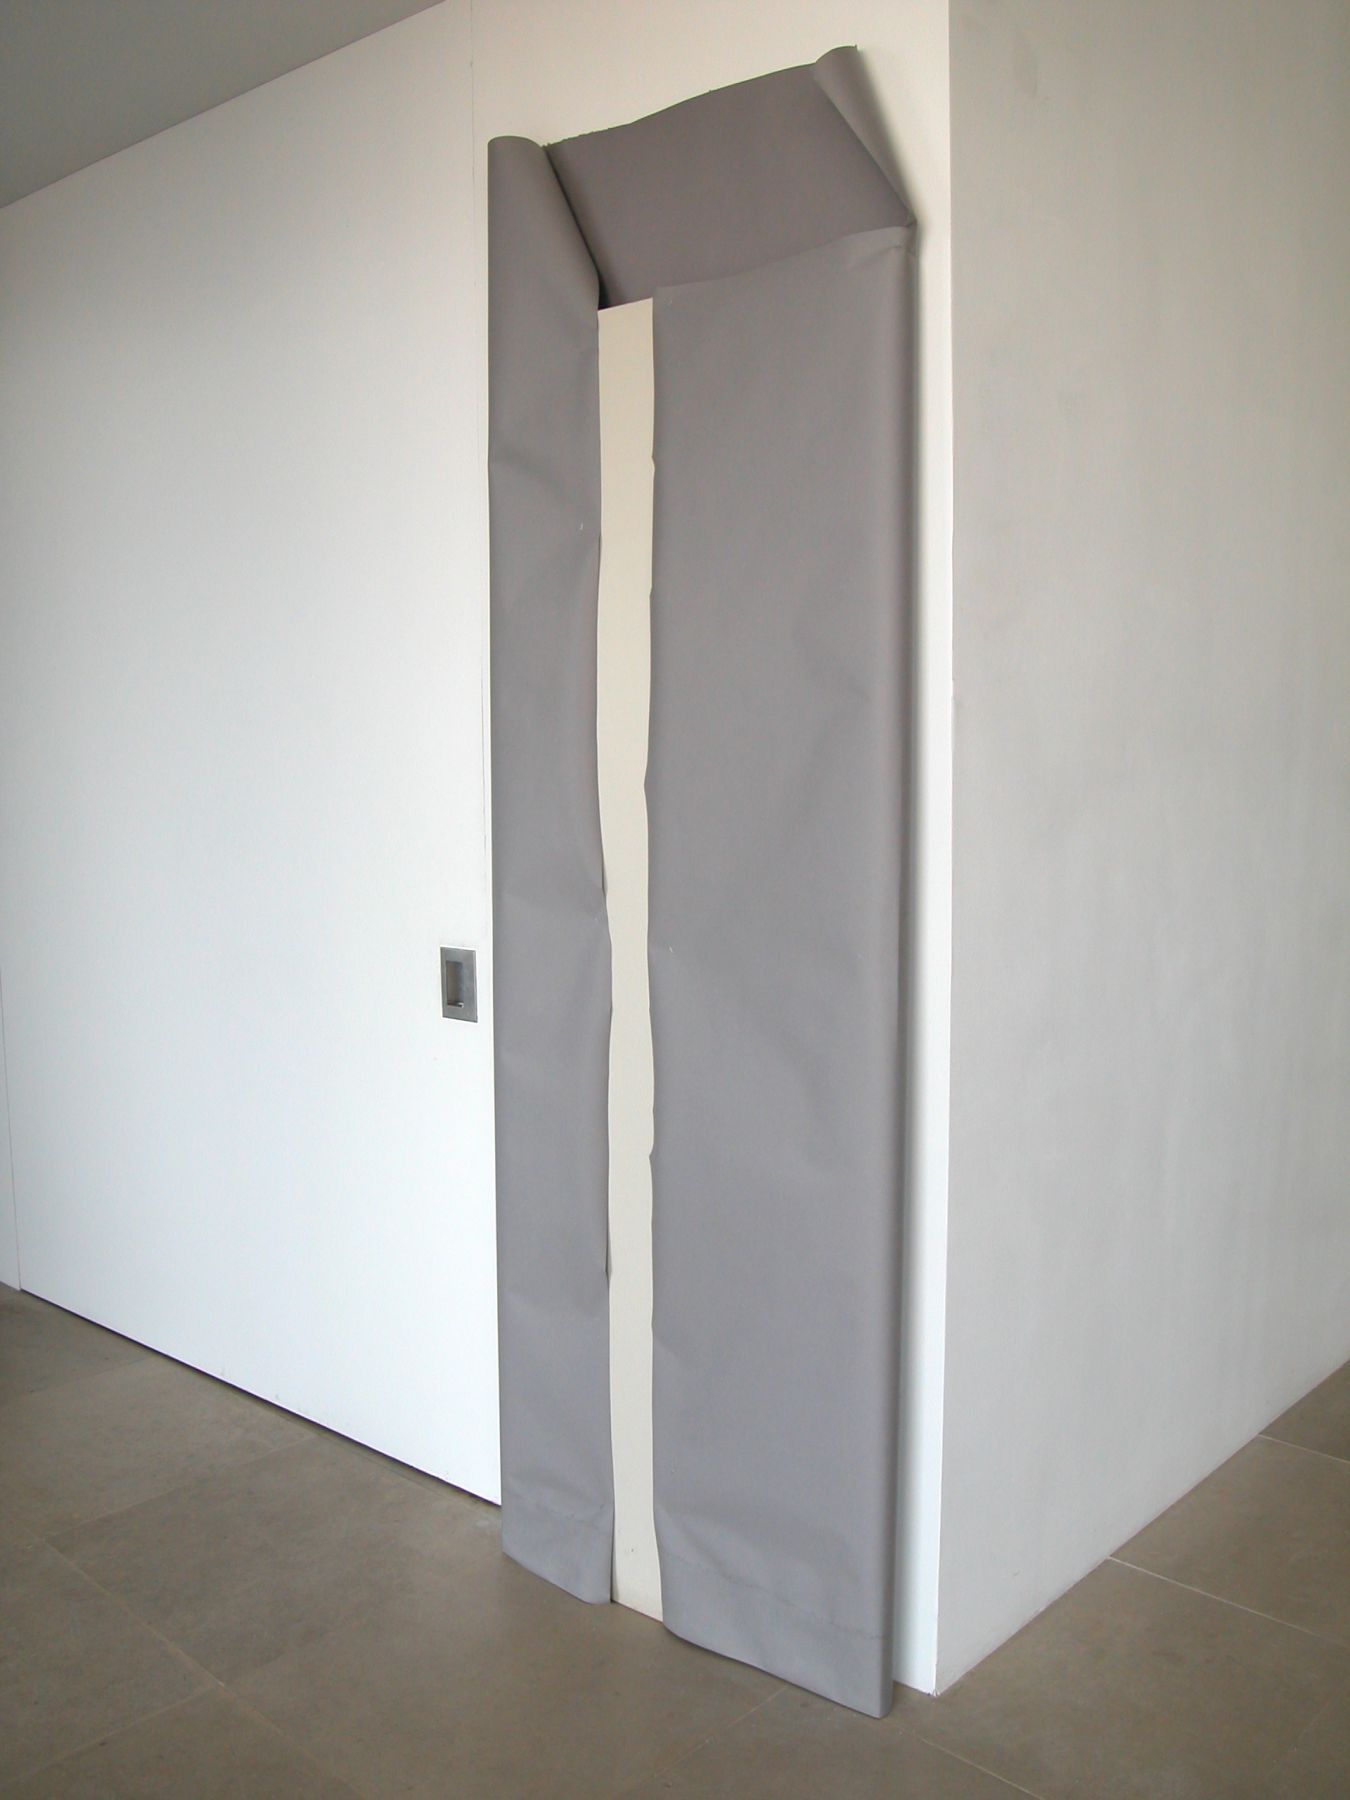 The Is Should Be Capitalized, 2008, Hollow core door, paper, staples, 90 x 30.5 x 3 inches